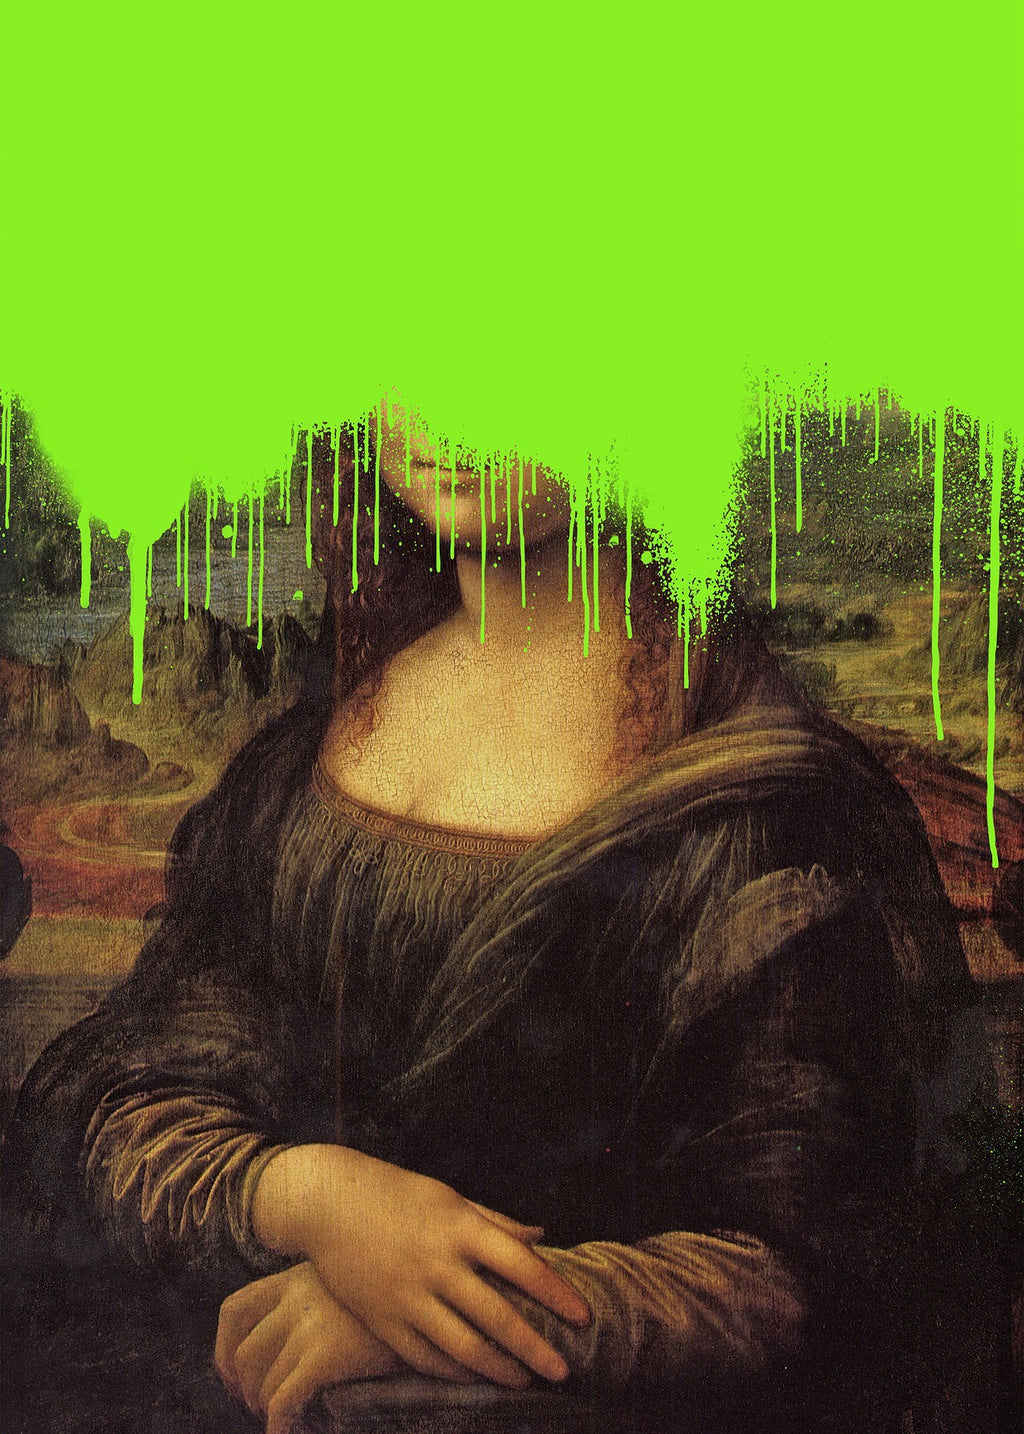 Drippy Mona Lisa Graffiti Print